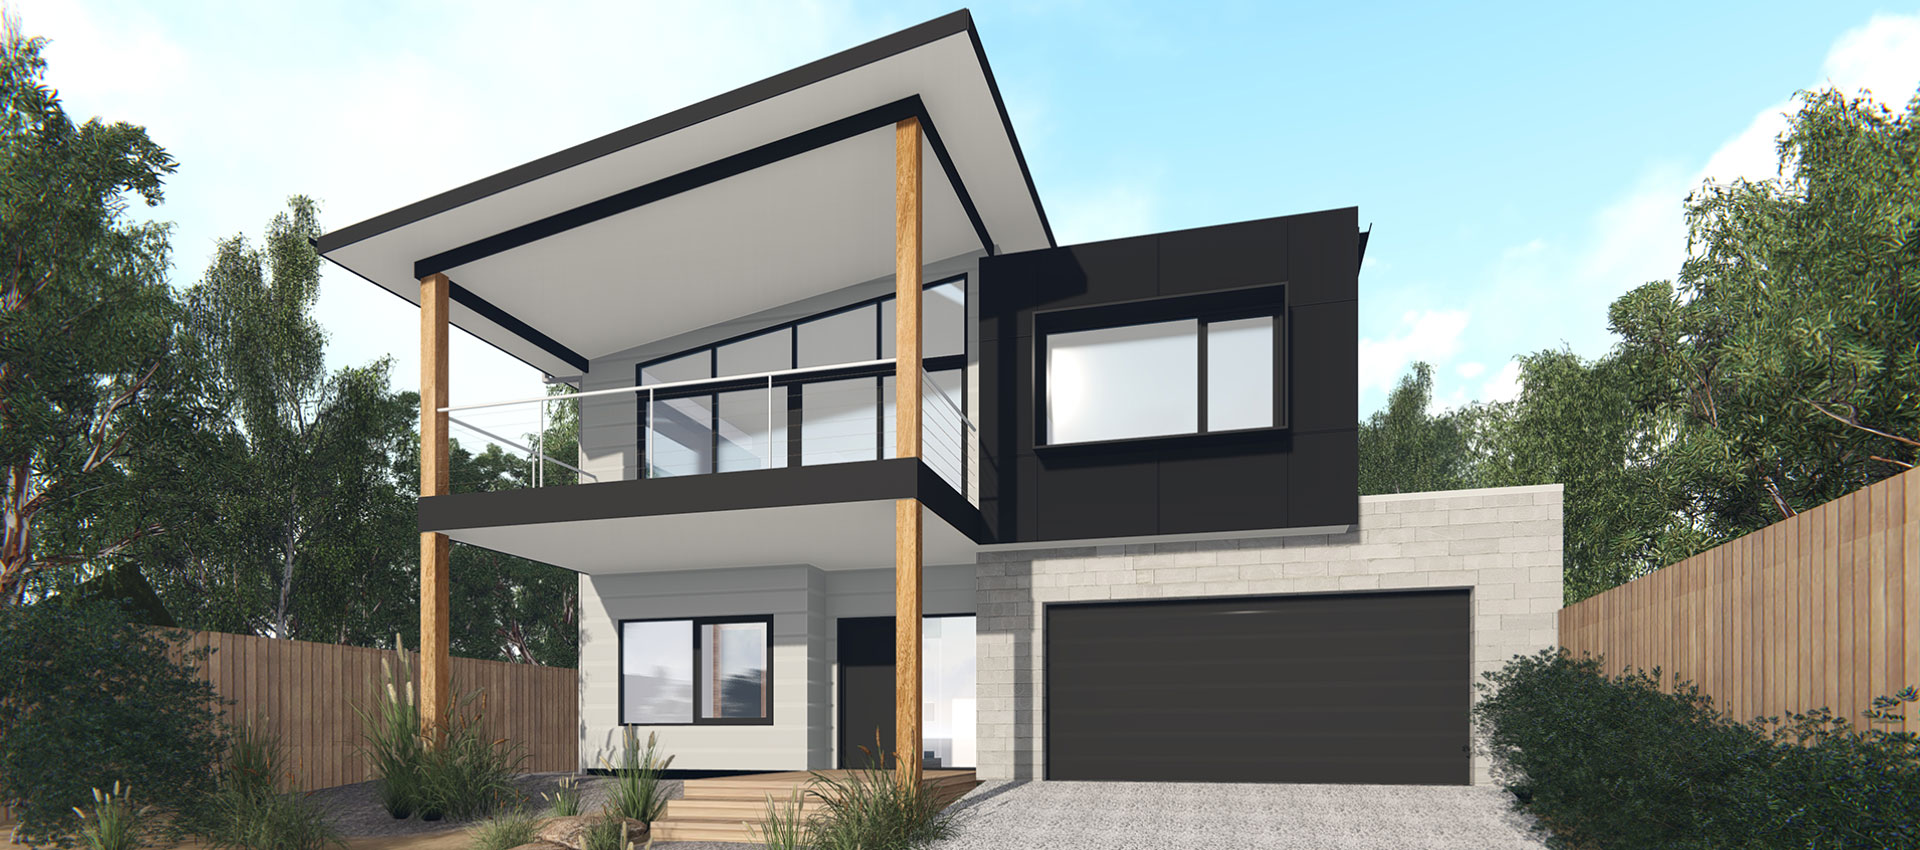 Bellbrae 30 Double Storey Home Design Geelong